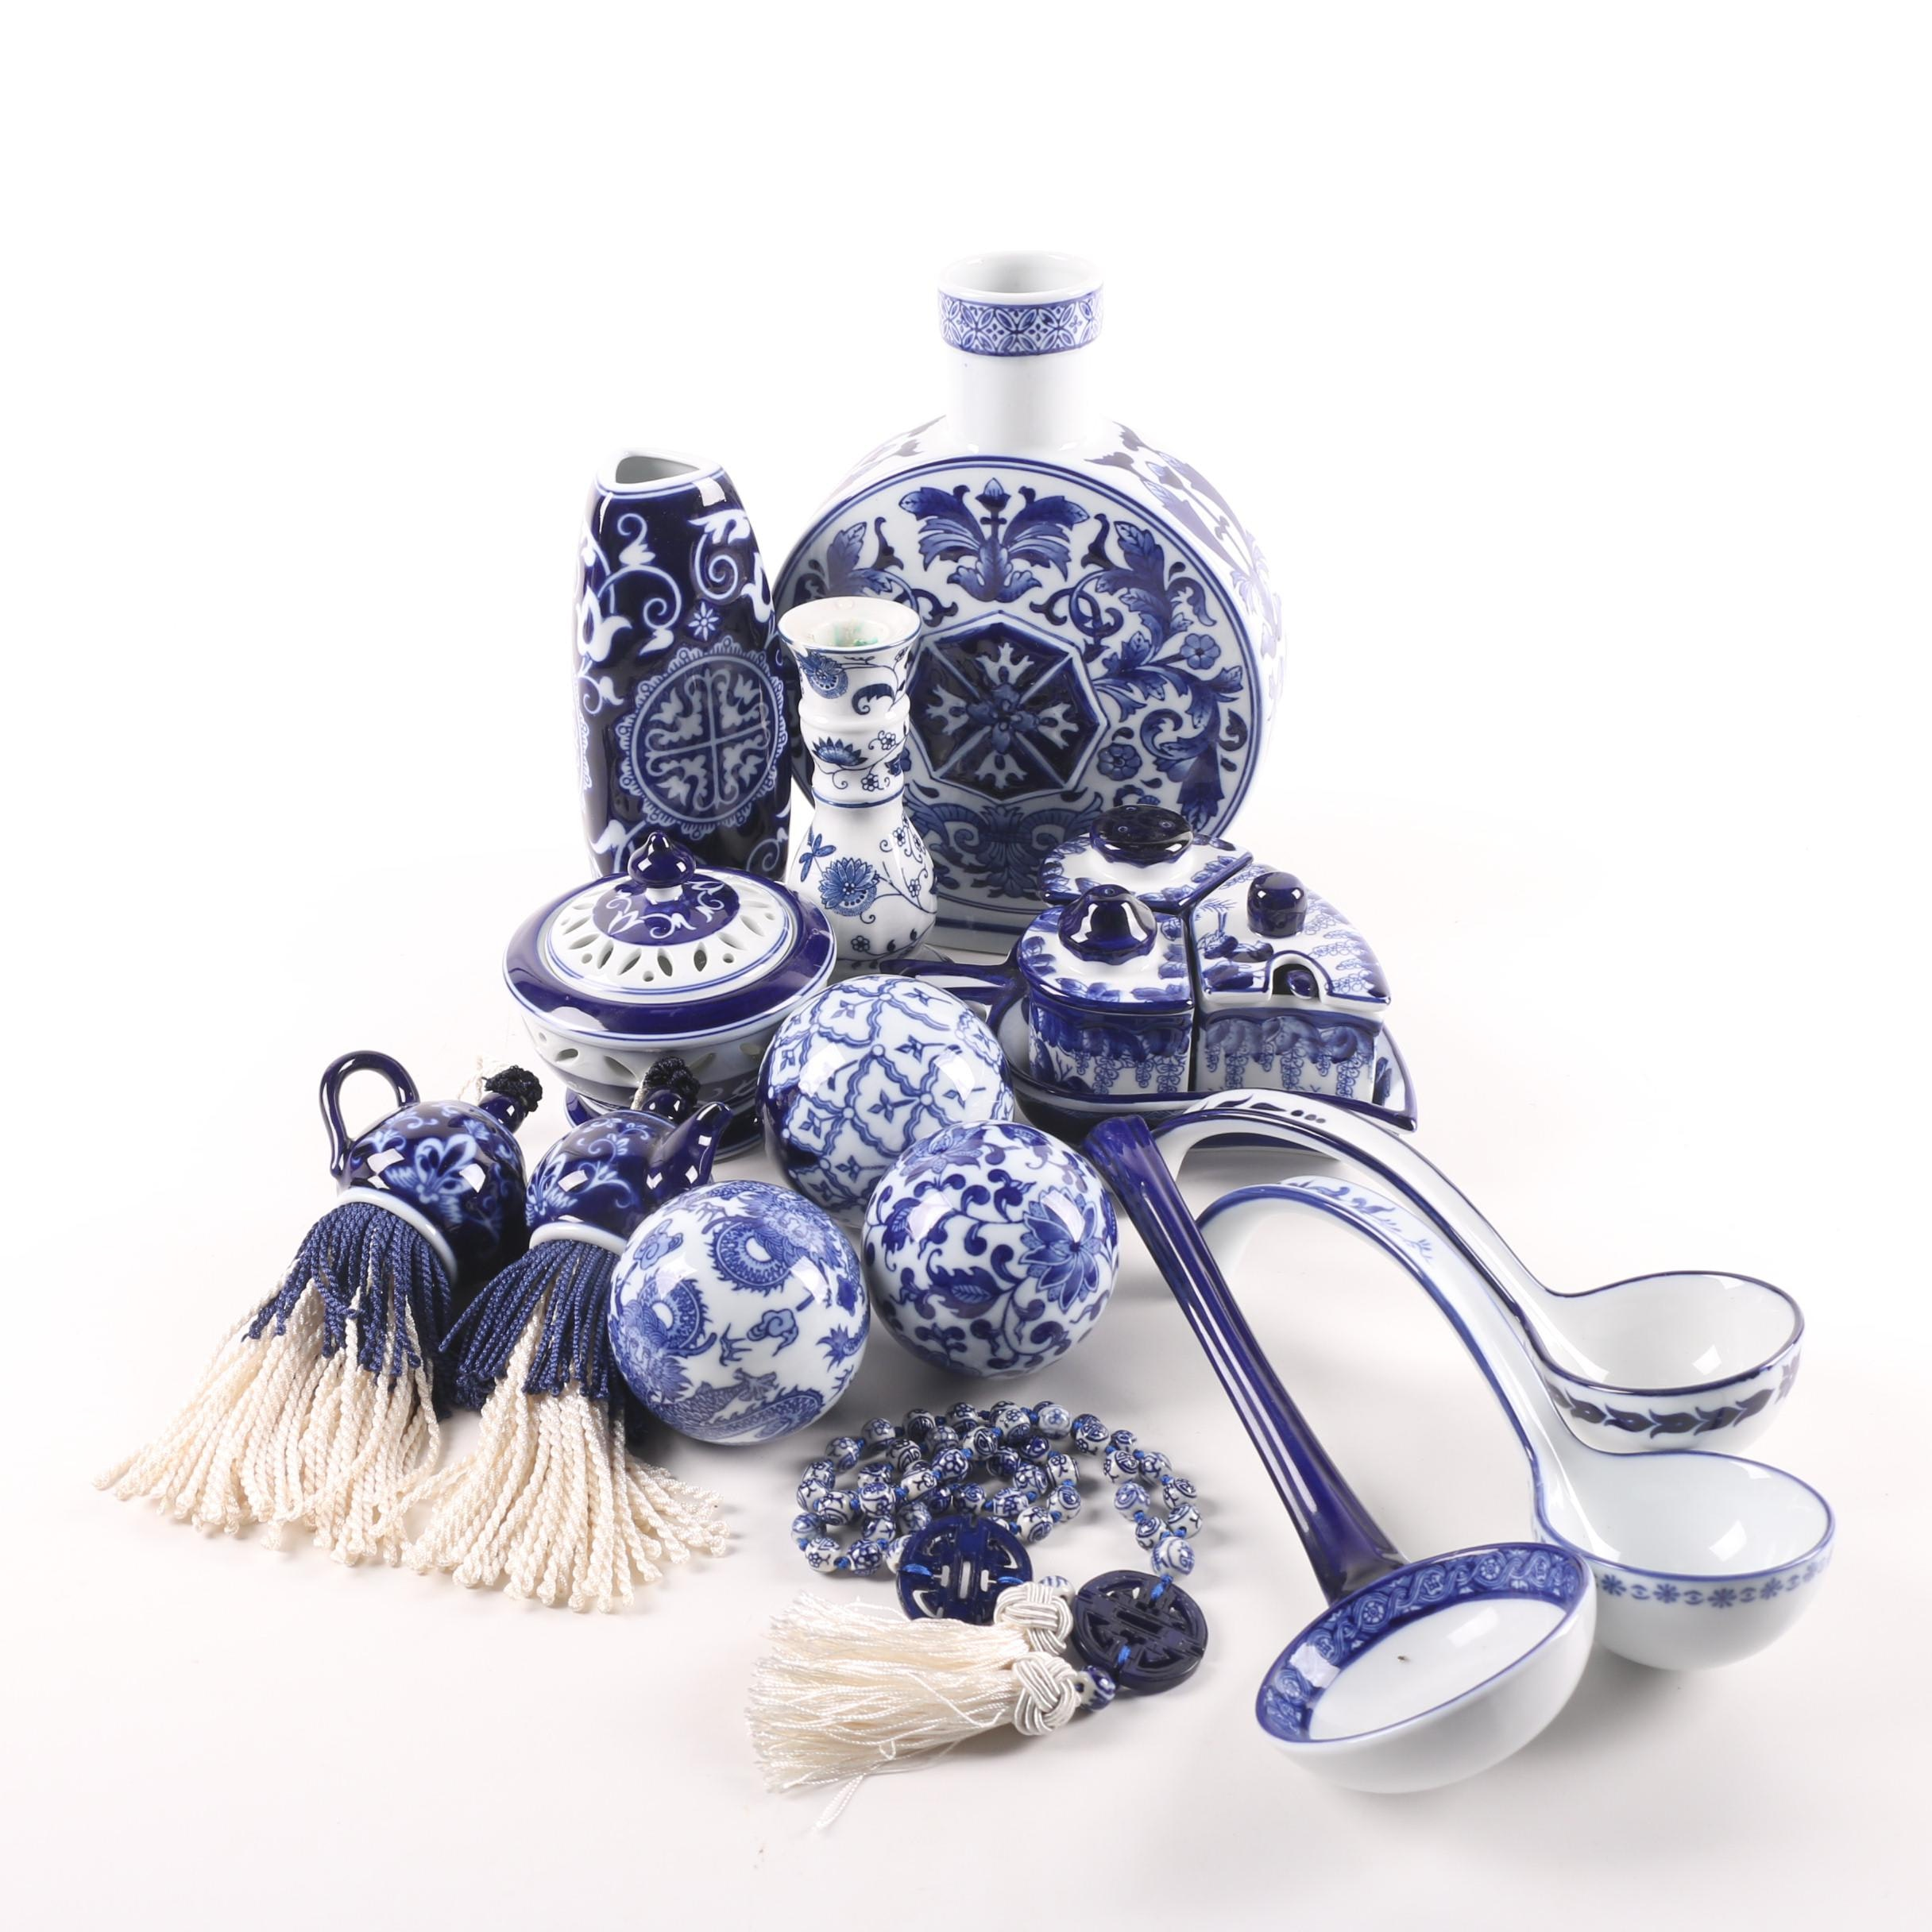 Bombay Chinese Porcelain Serveware and Vase with Decorative Tassels